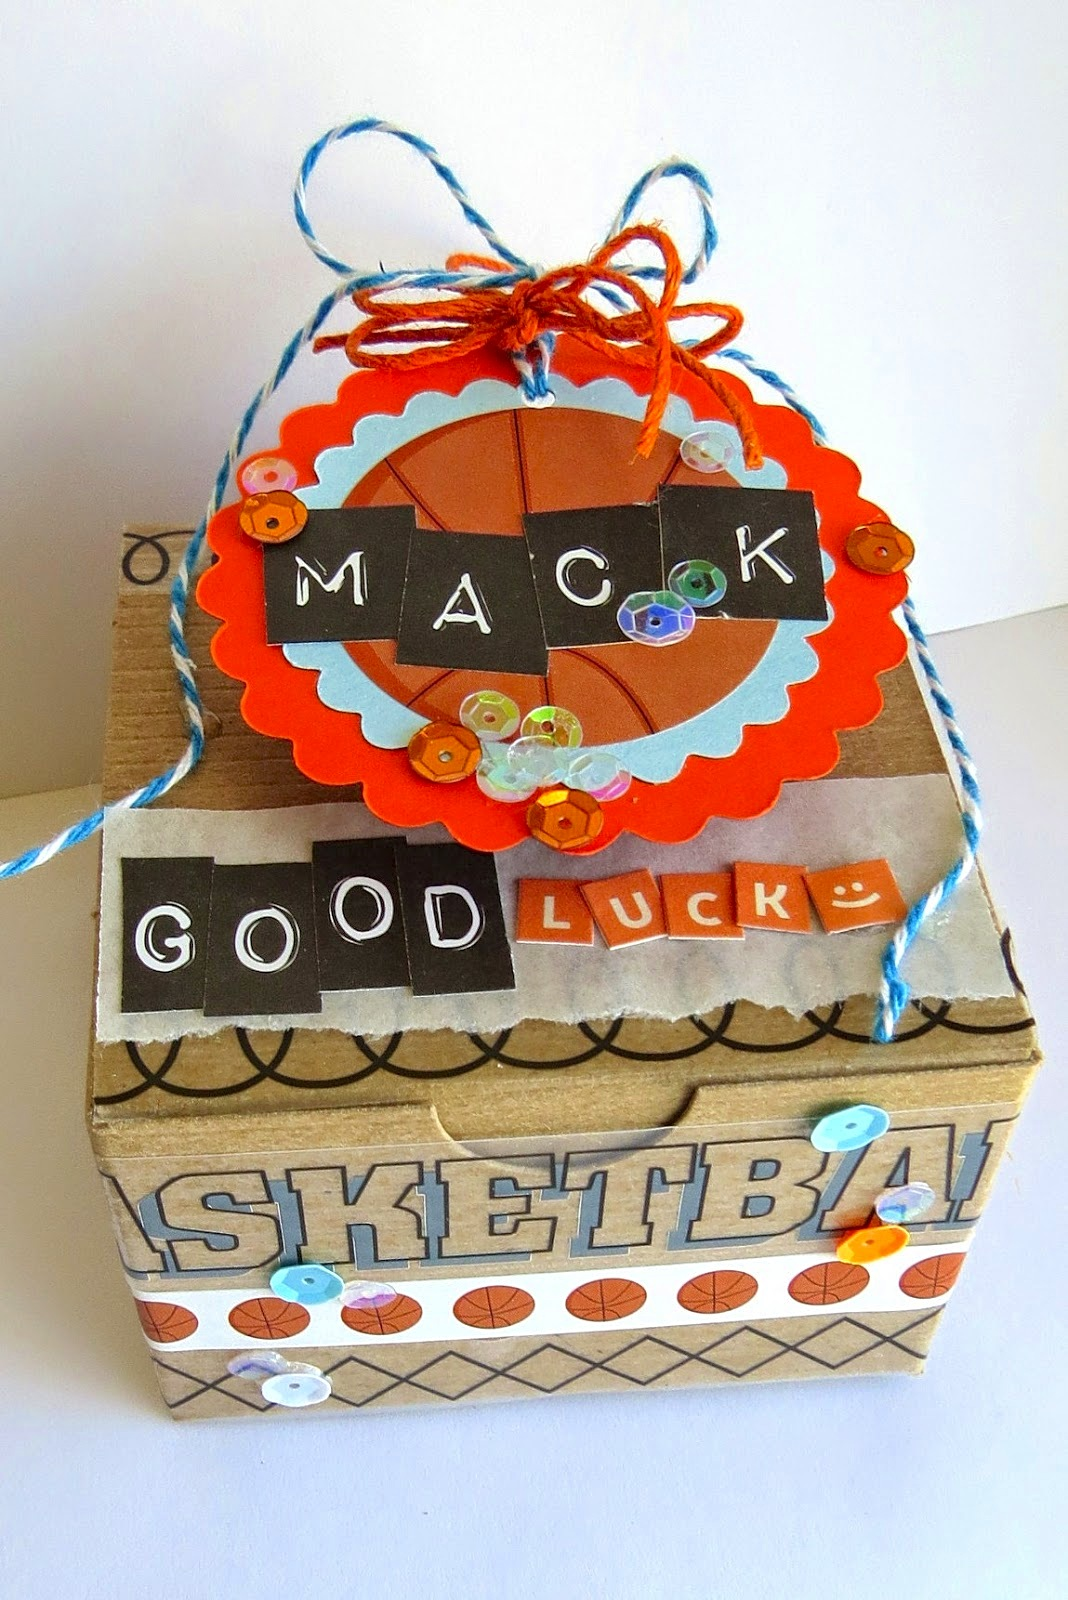 SRM Stickers Blog - A Gift of Good Luck by Shannon - #basketball #gift #kraftbox #punchedpieces #stickers #twine #punchedpieces #DIY